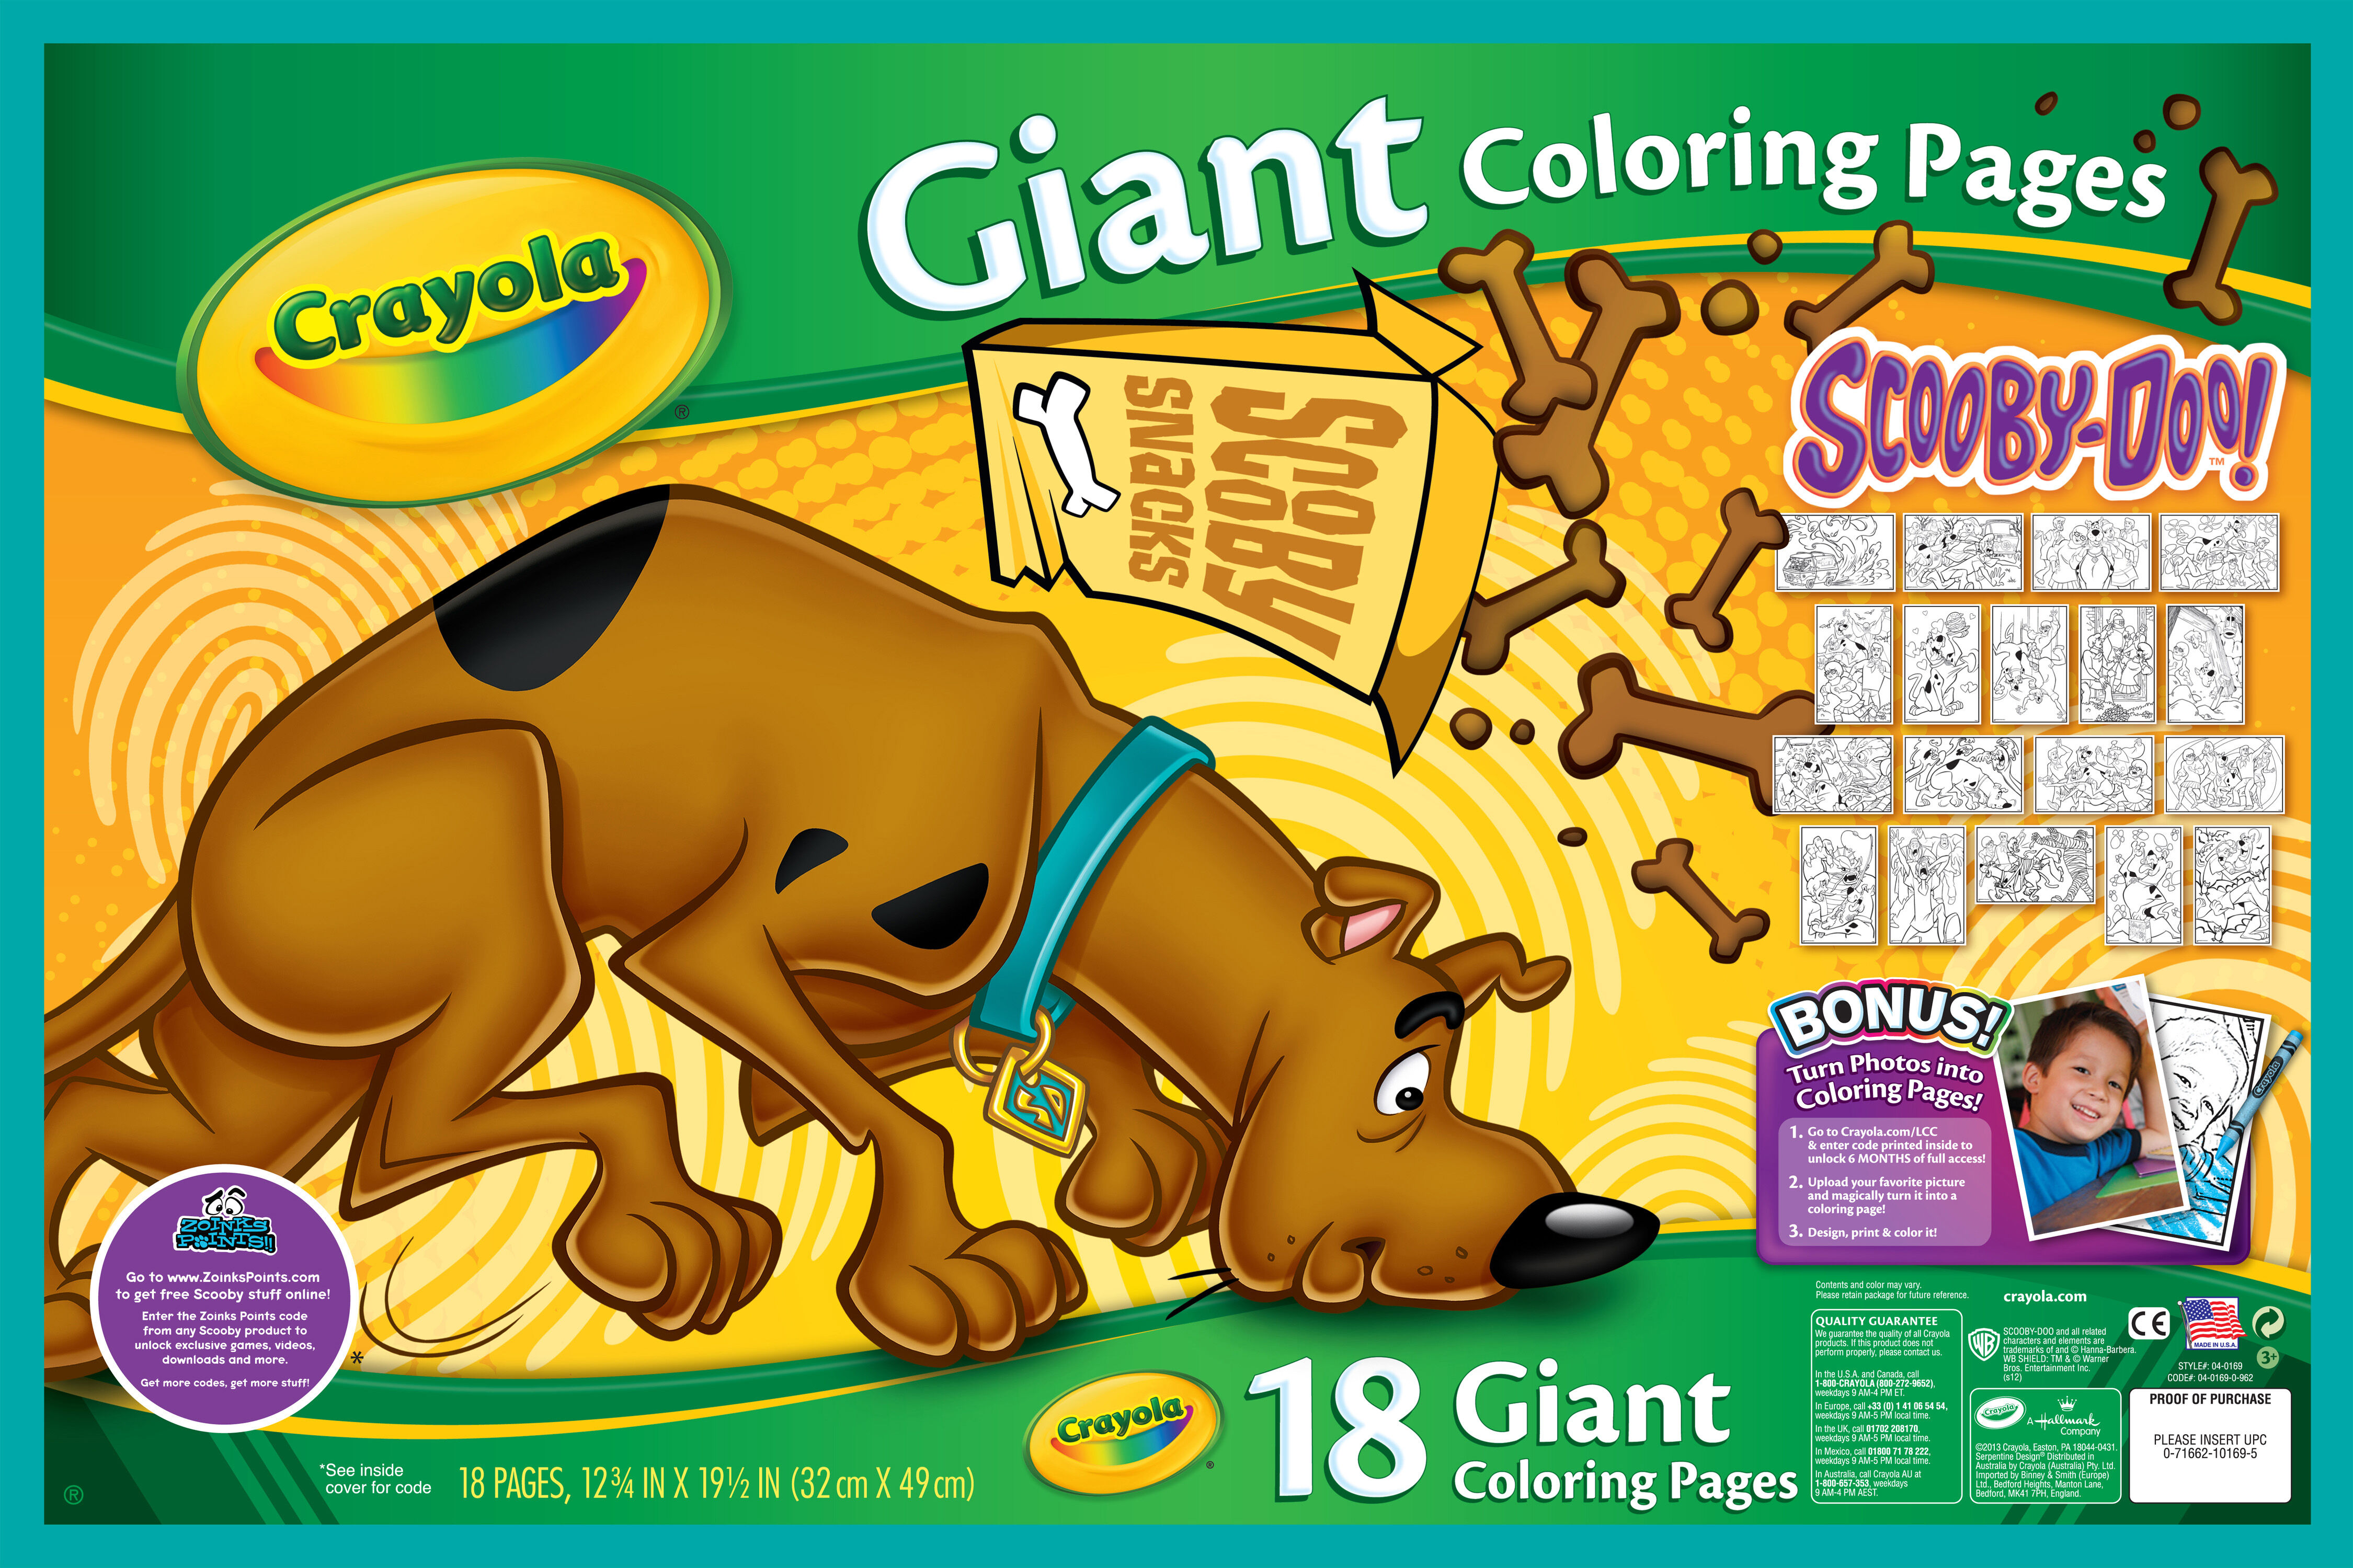 Giant Coloring Pages - Scooby Doo Crayola